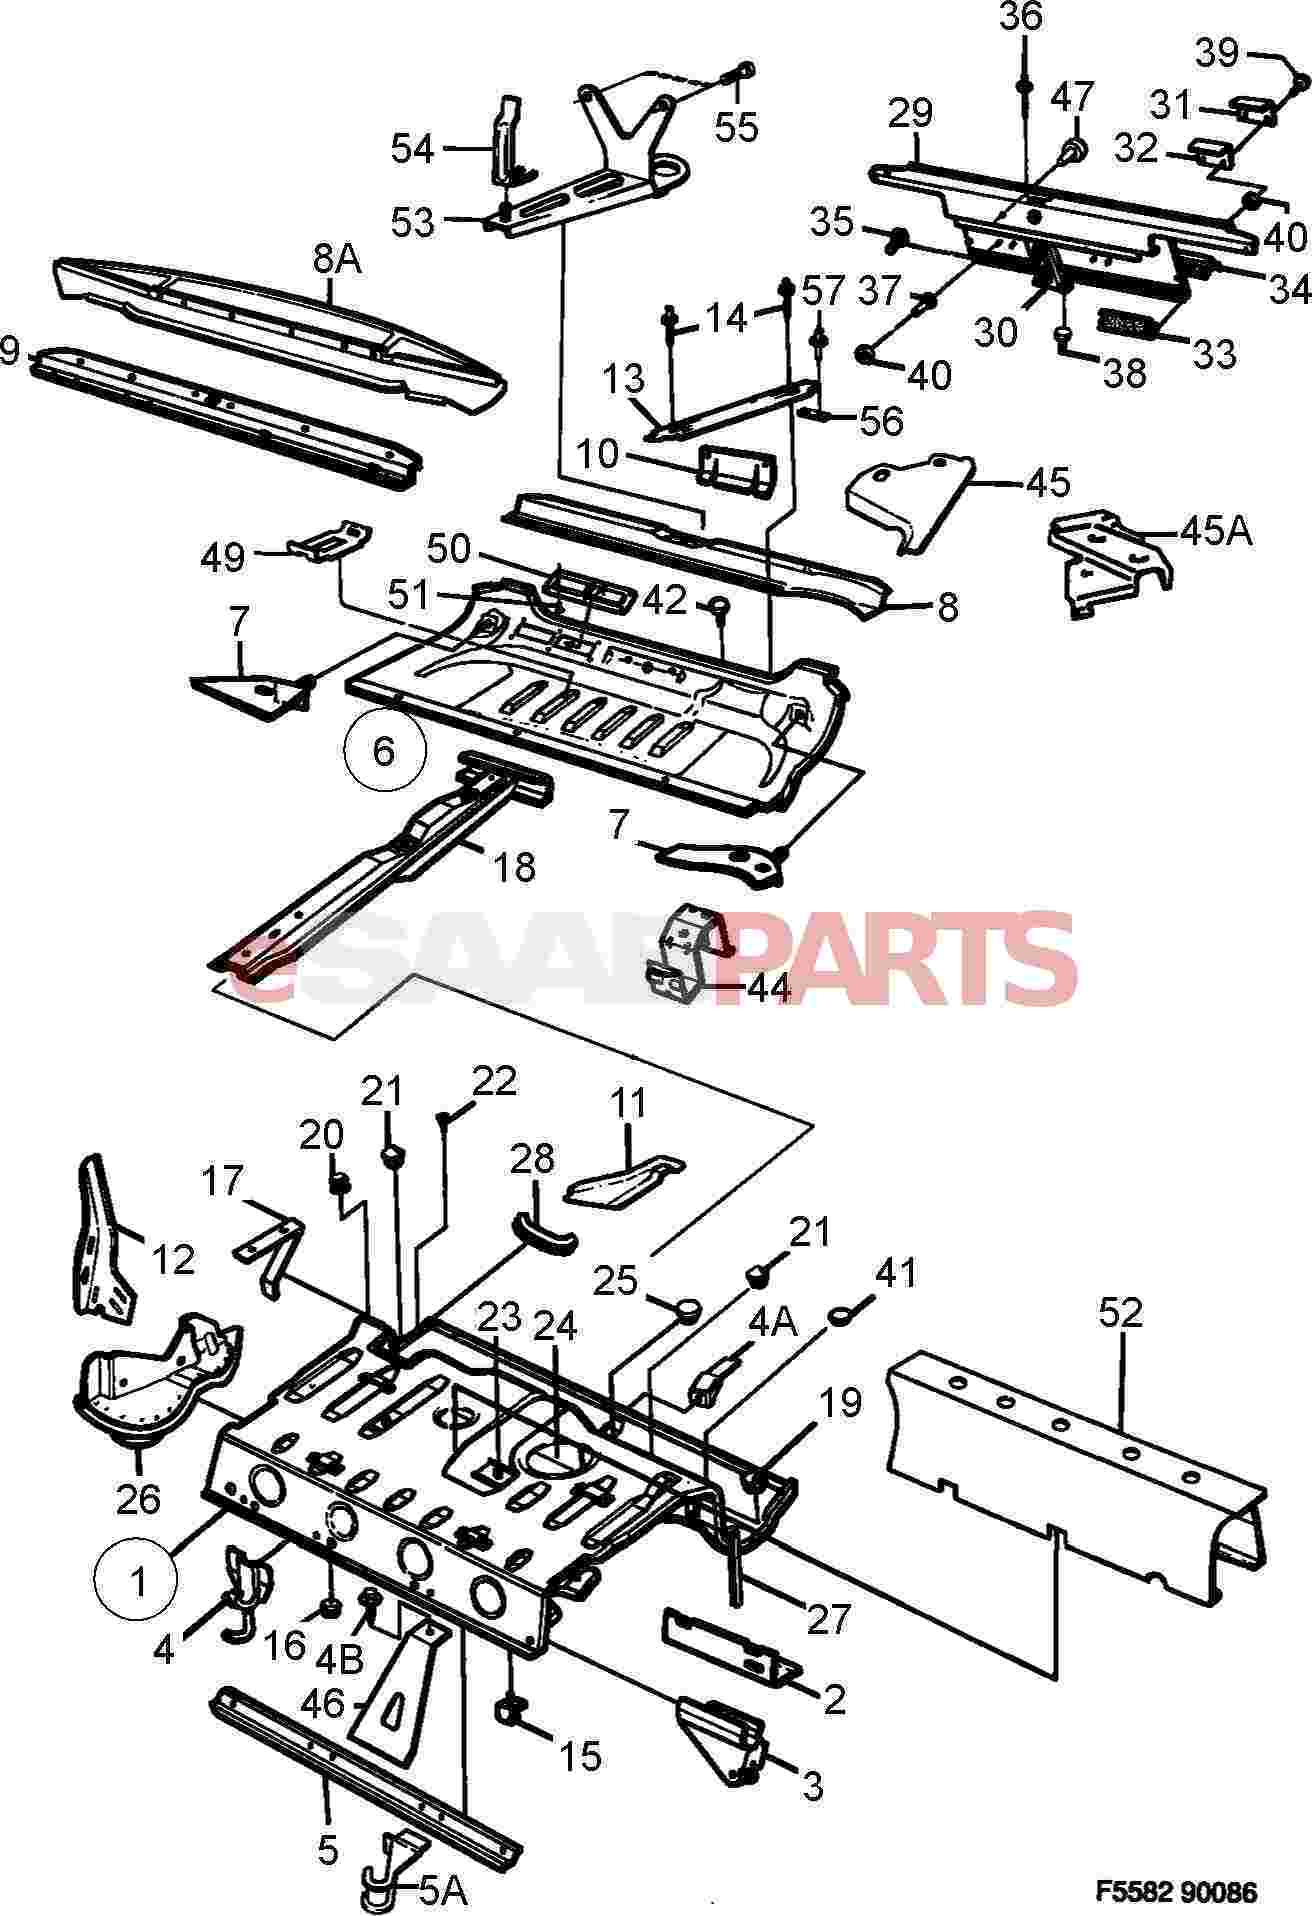 1984 saab 900 digram for a rear floor removable